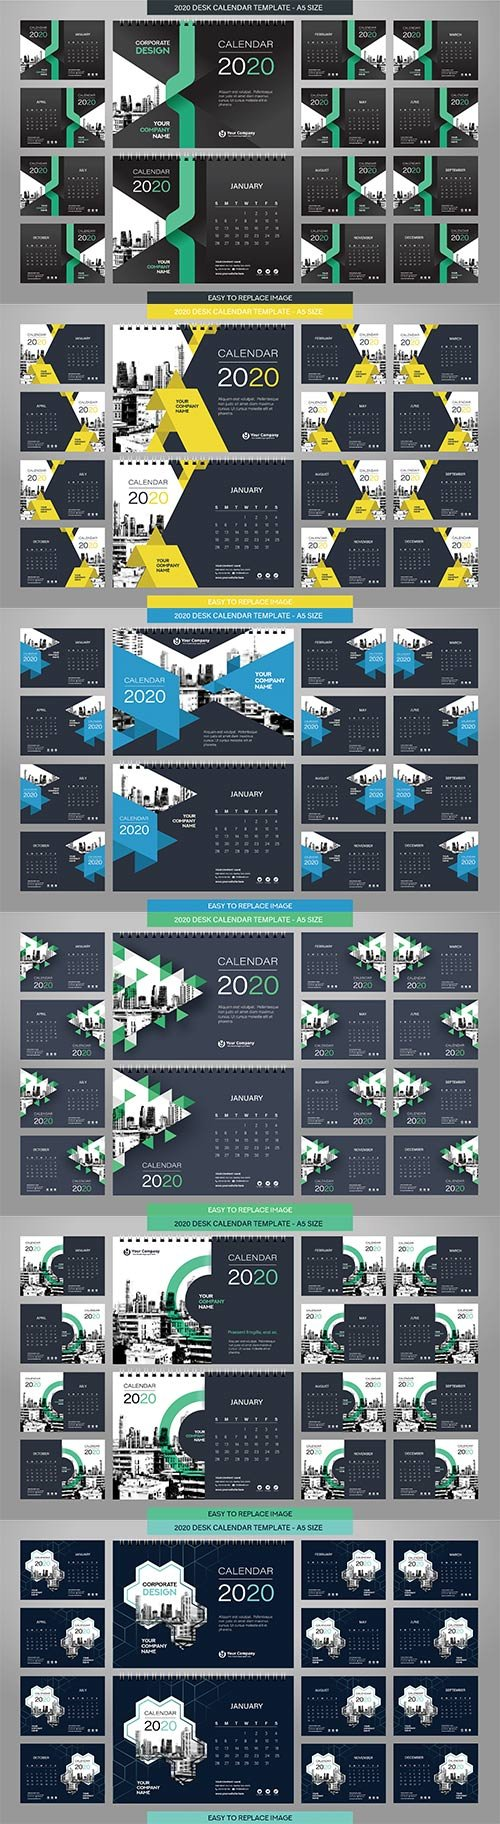 Desk Calendar 2020 template - 12 months included - A5 Size